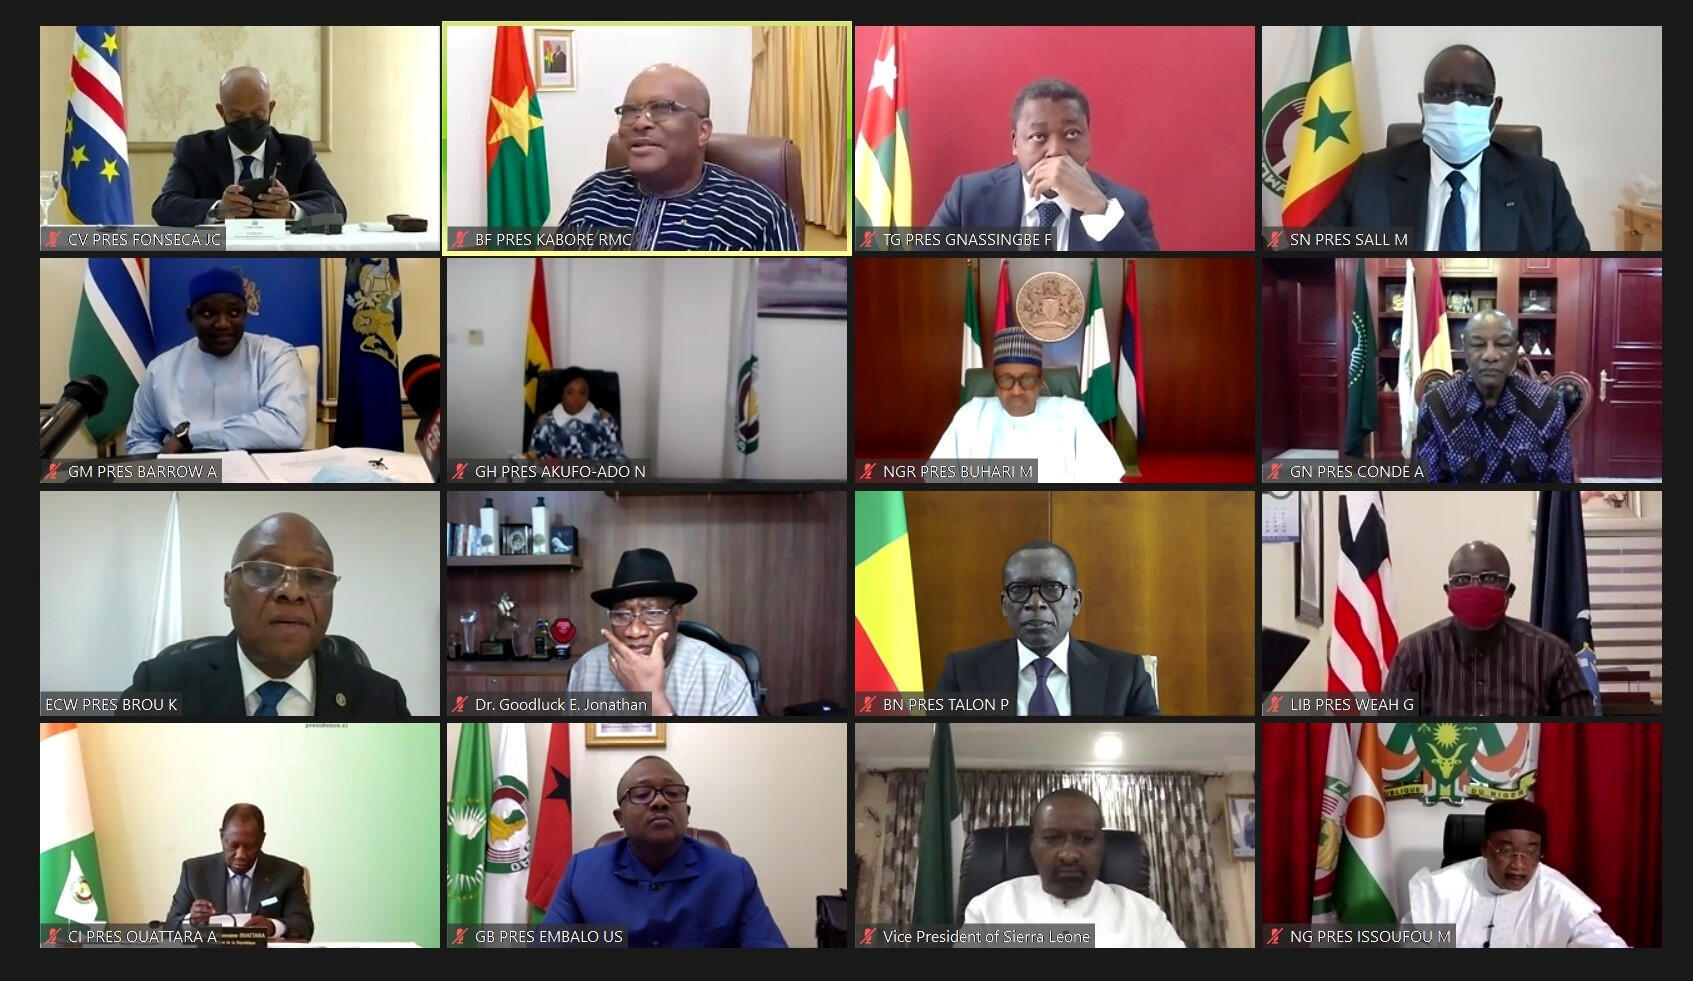 A screenshot showing a virtual summit of the heads of the Economic Community of West African States (ECOWAS) discussing Mali's political crisis, 20 August, 2020.